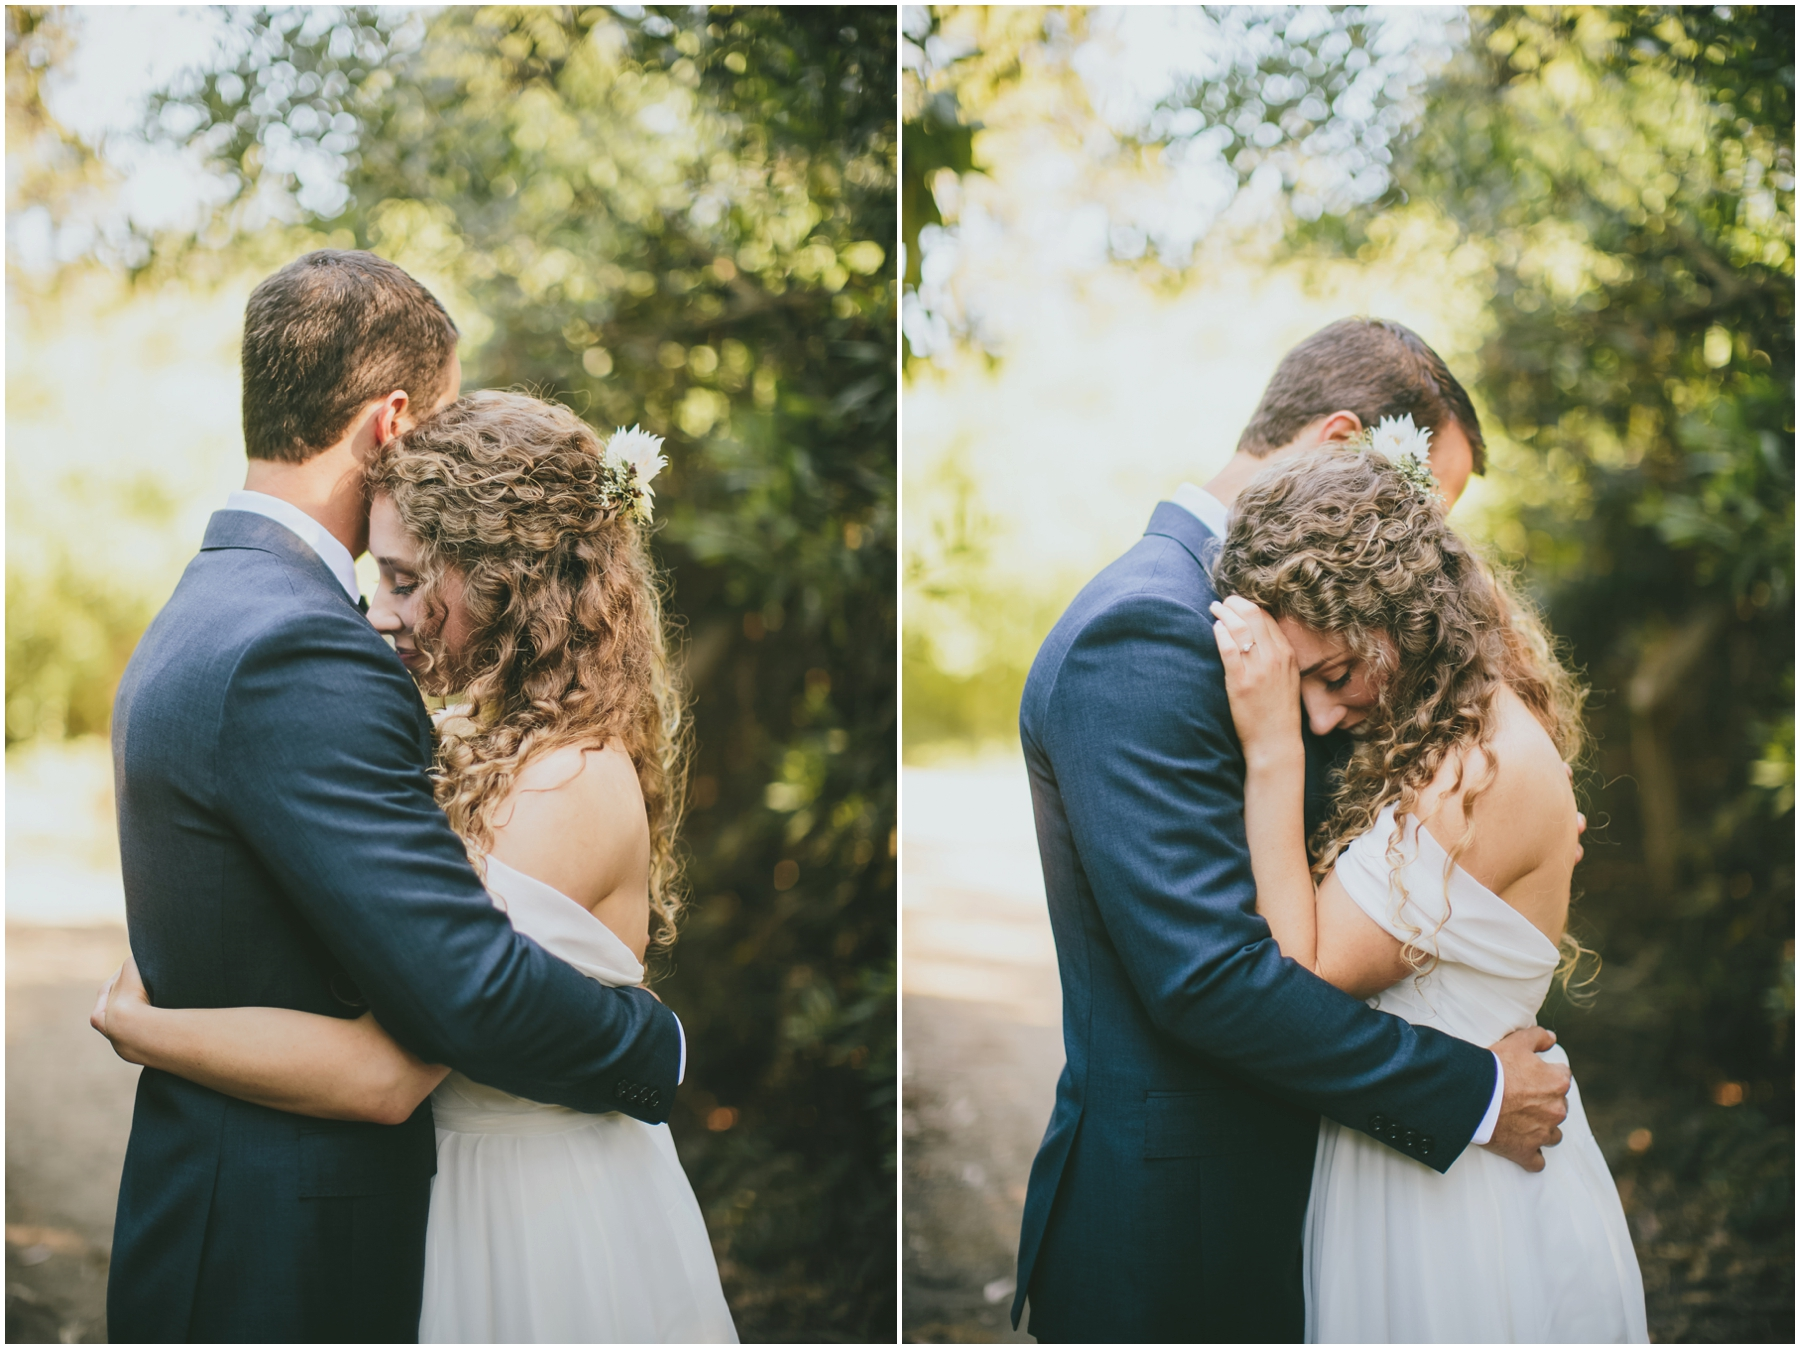 Emily+Paul-WEDDING_KellyBoitanoPhotography_0031